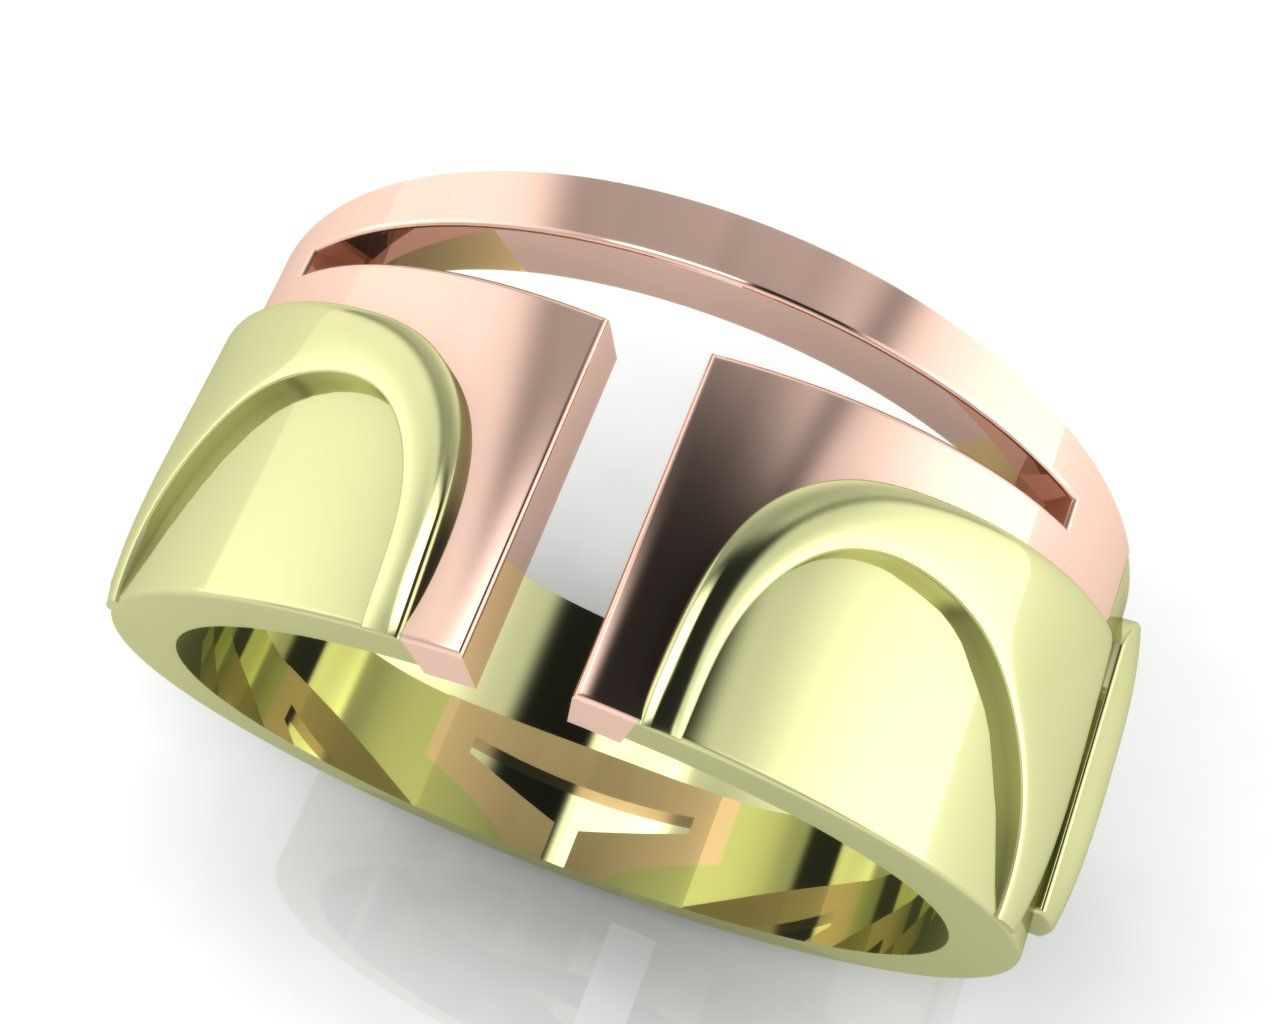 Boba fett star wars engagement ring from brilliant earth for Star wars mens wedding ring